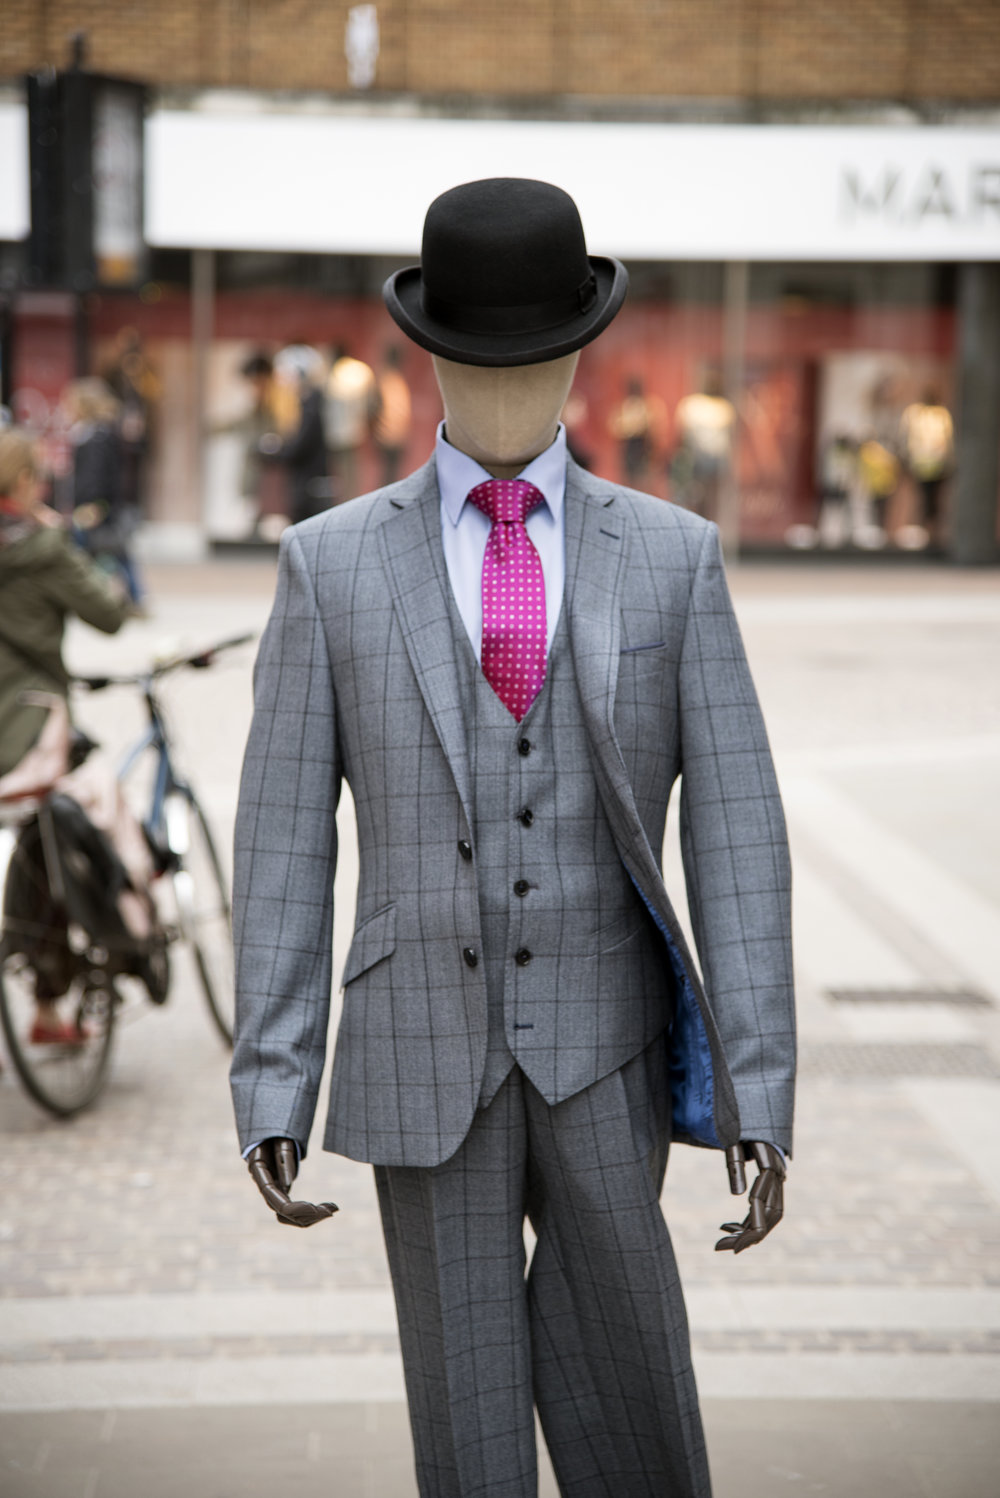 Shop dummy in grey suit with pink tie in Hereford 2.jpg